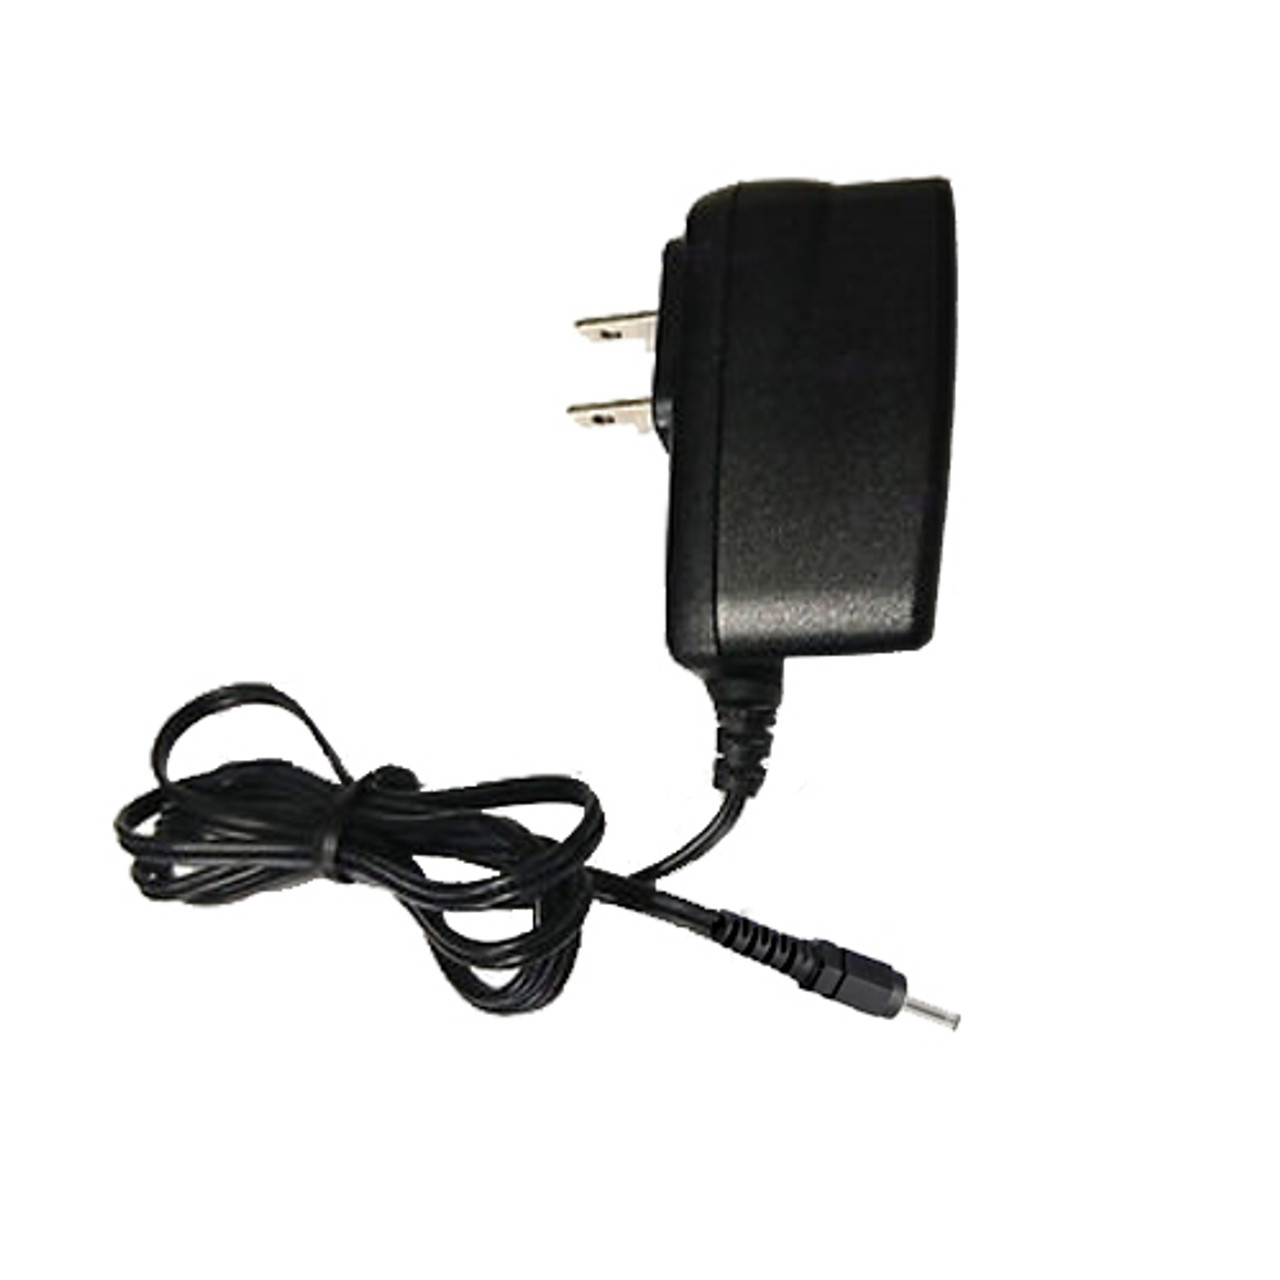 SIRIUS Sportster 5 power adapter USB Charger 90 degrees Cable Car or Home dcok